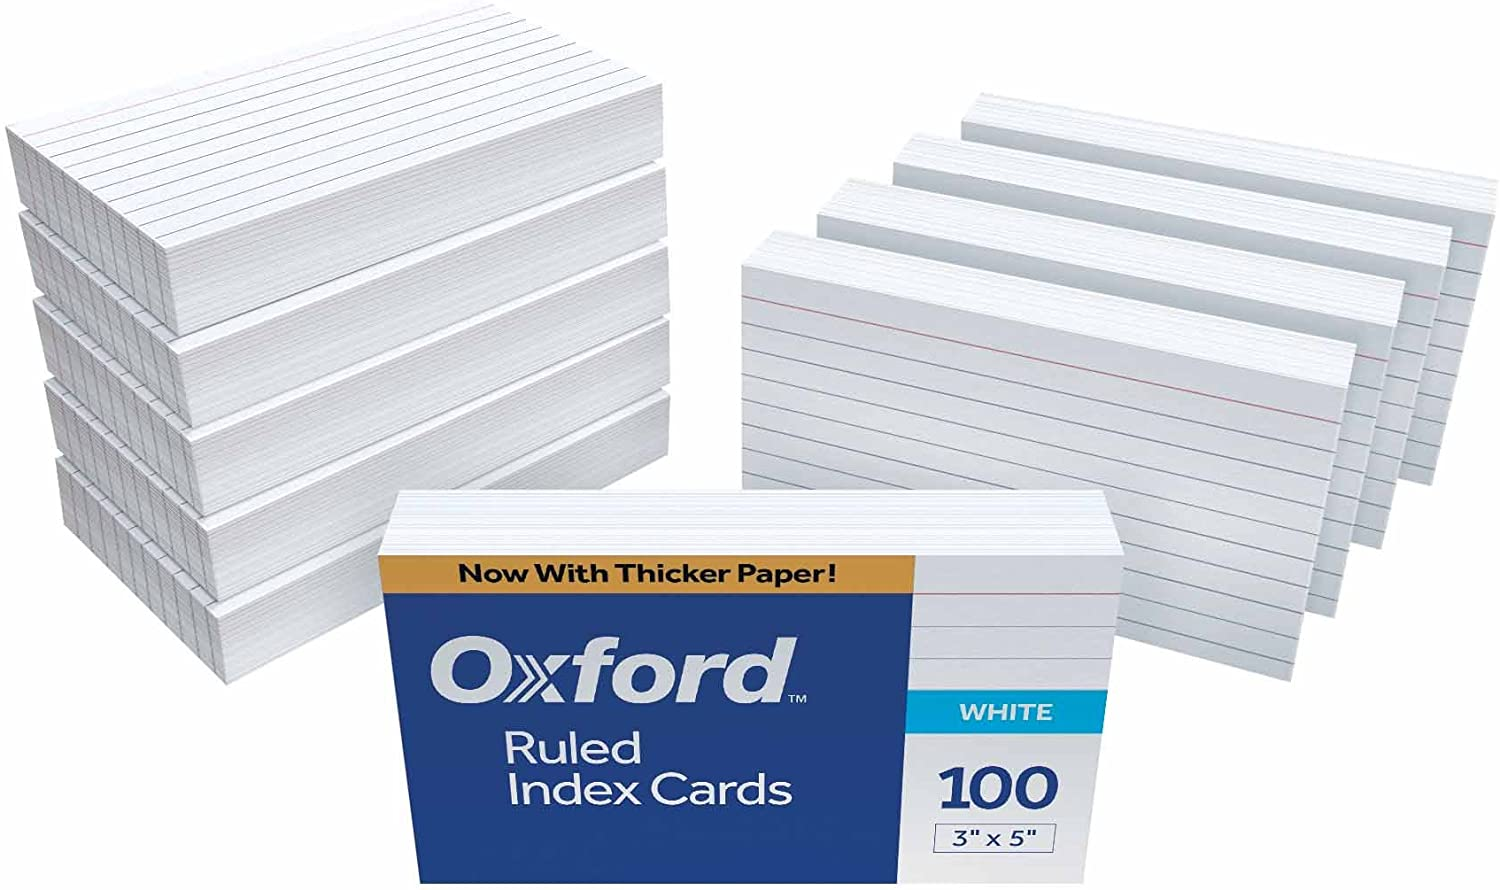 """Oxford Ruled Index Cards, 3"""" x 5"""", White, 1,000 Cards (10 Packs of 100) (31): Office Products"""